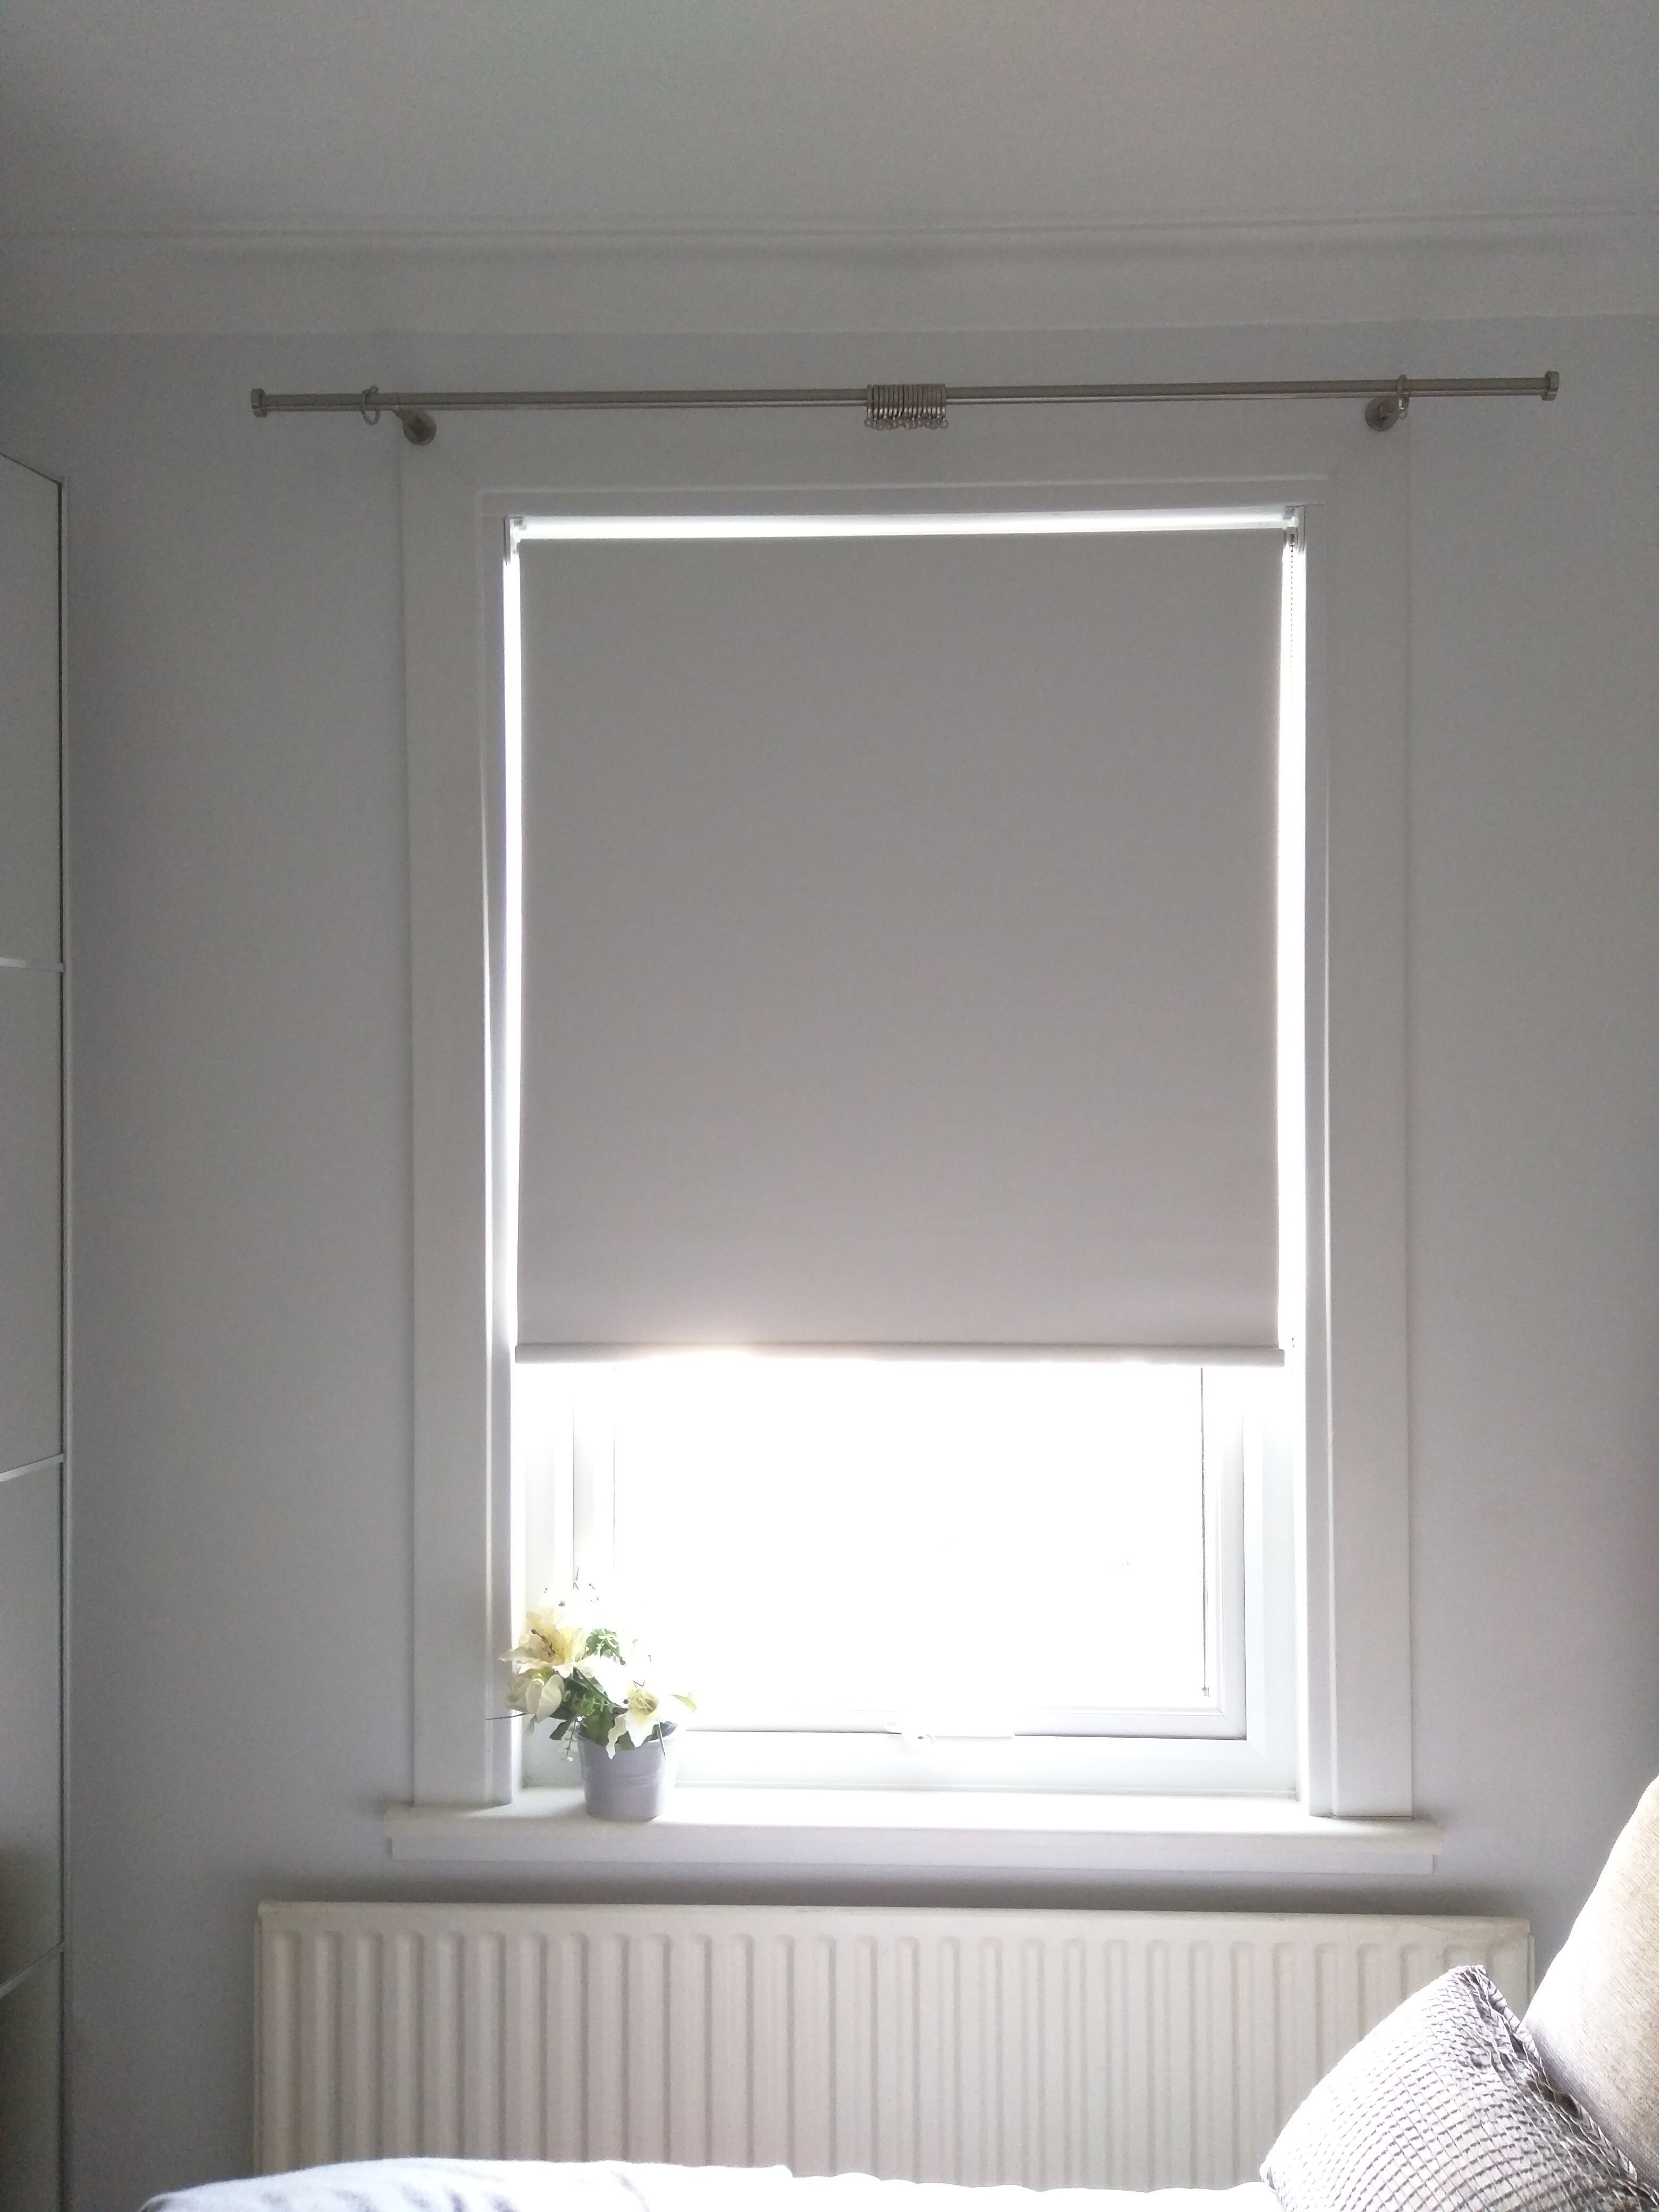 Blackout Roller Blind In Polar White Fitted To Bedroom Window In